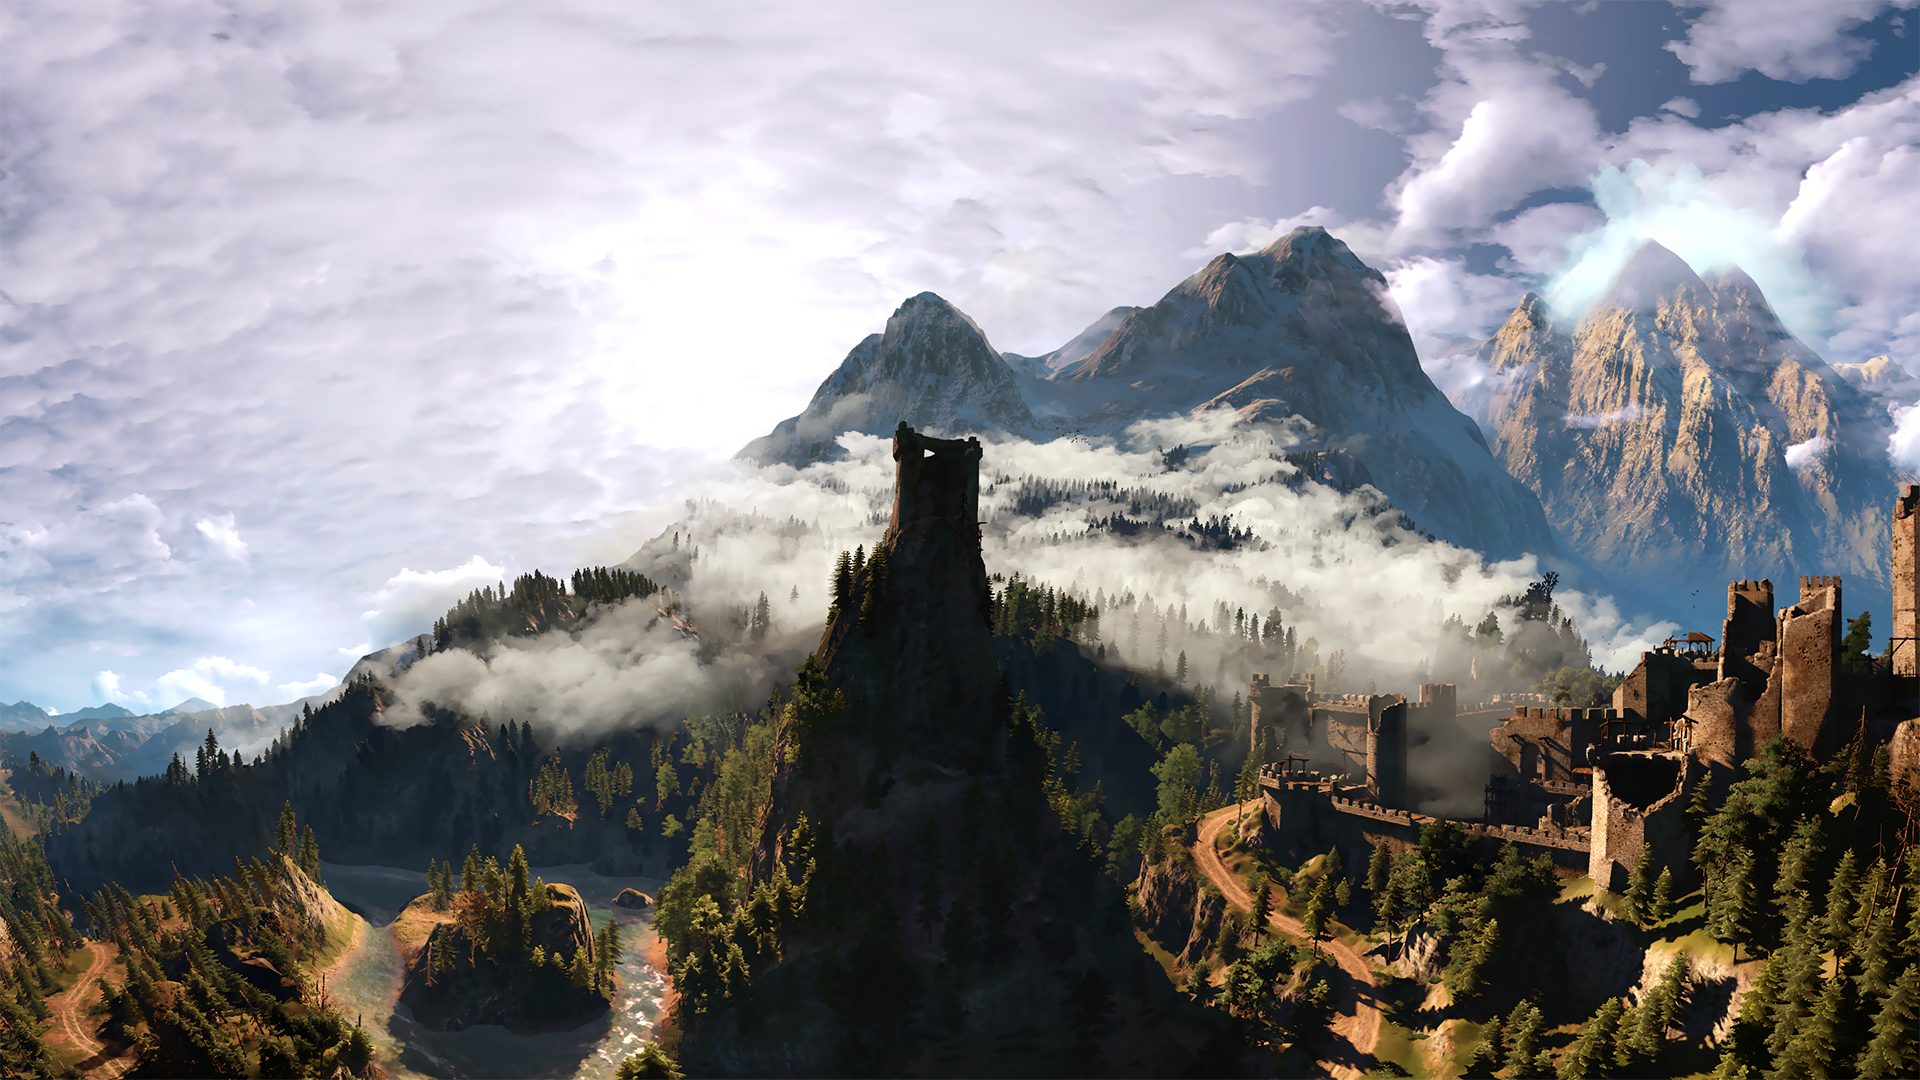 Kaer-Morhen-Watchtower-Witcher-1920x1080-Need-iPhone-S-Plus-Background-for-I-wallpaper-wpc5806528